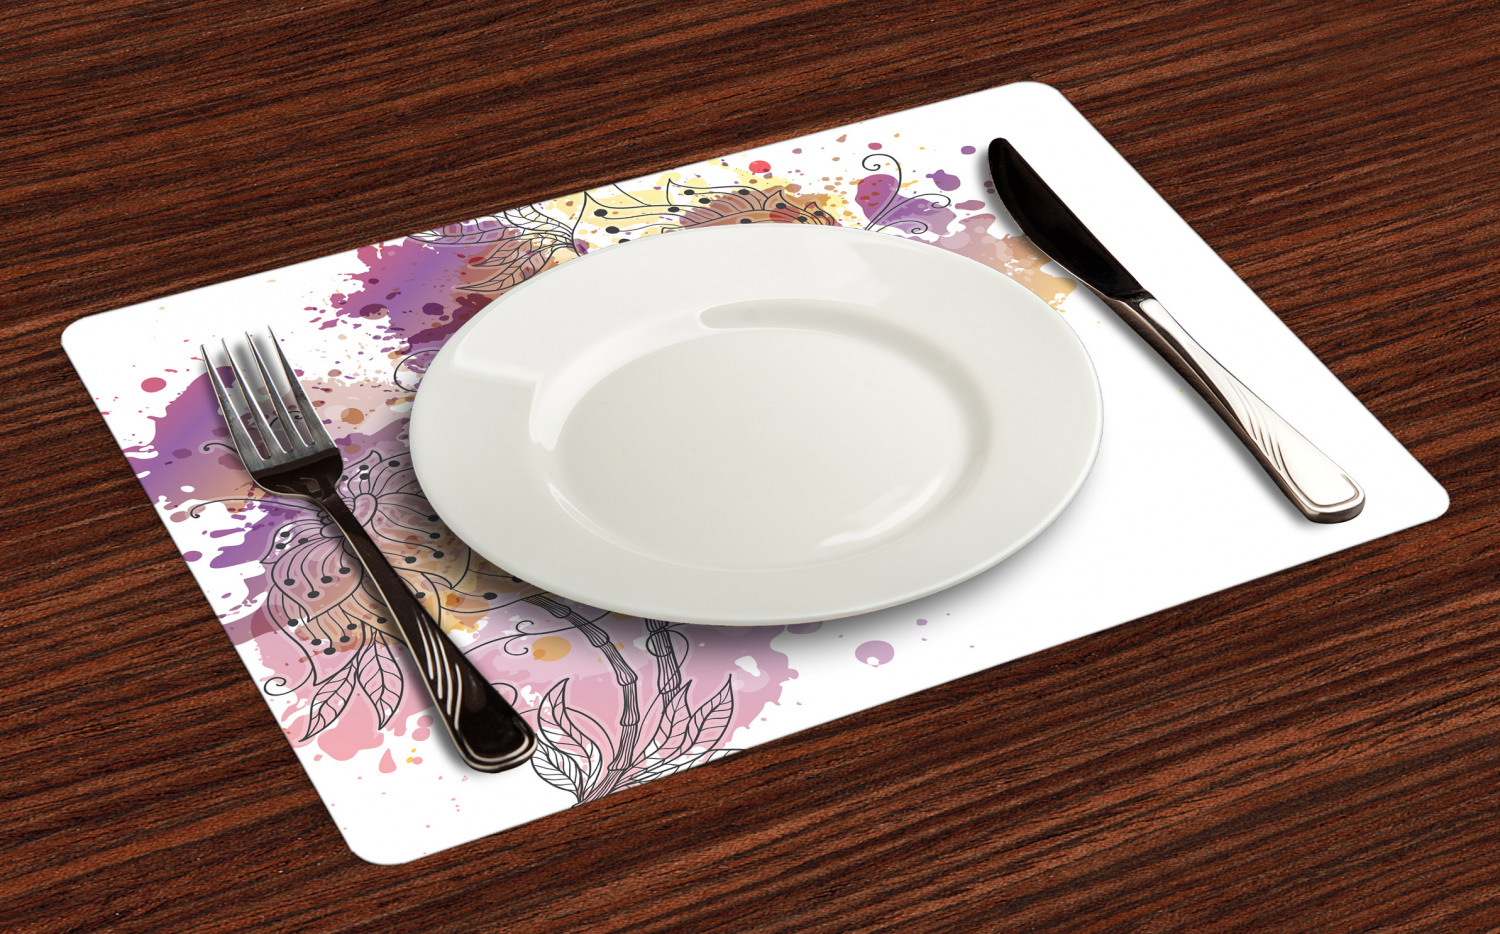 Ambesonne-Flower-Pattern-Placemat-Set-of-4-Fabric-Place-Mats-for-Table-Decor thumbnail 109